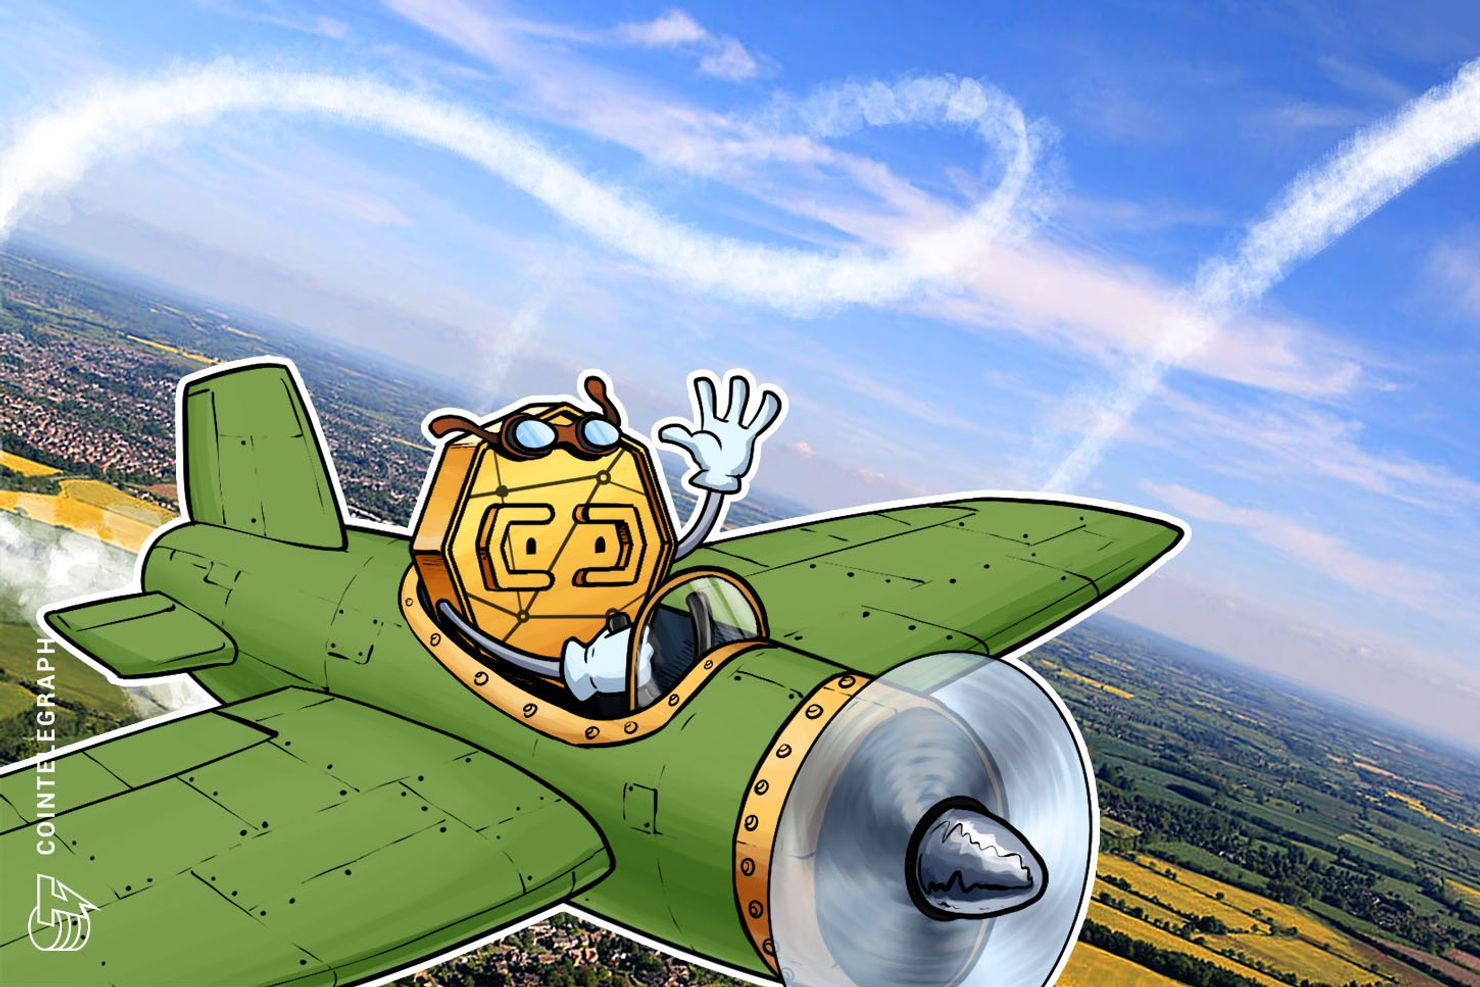 Bitcoin Holds Near $3,650 While the Stock Market Sees Minor Uptrend